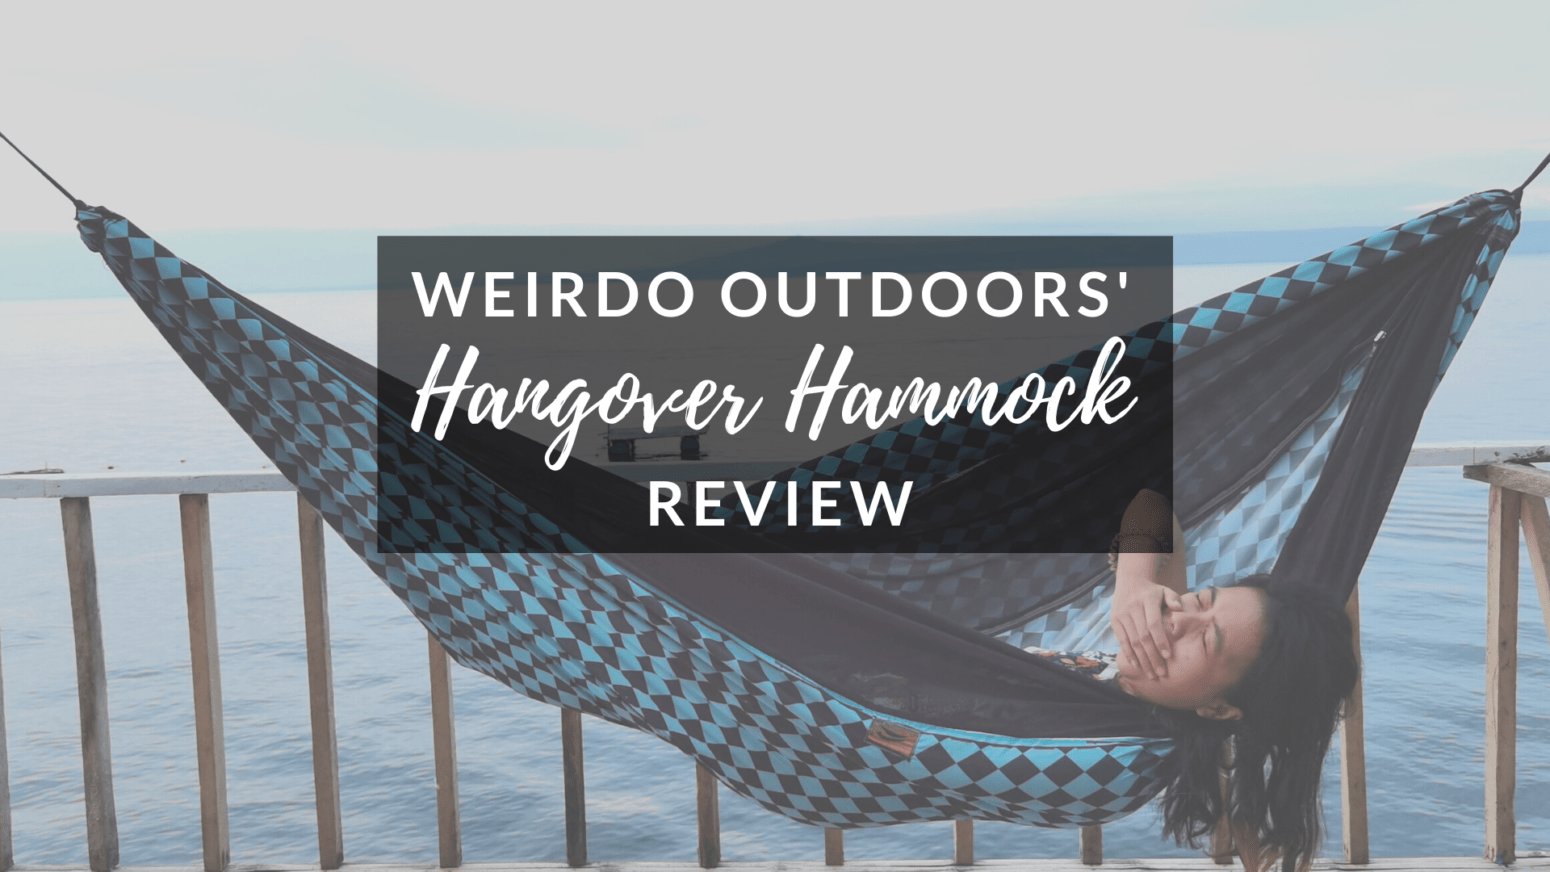 Hangover Hammock Review